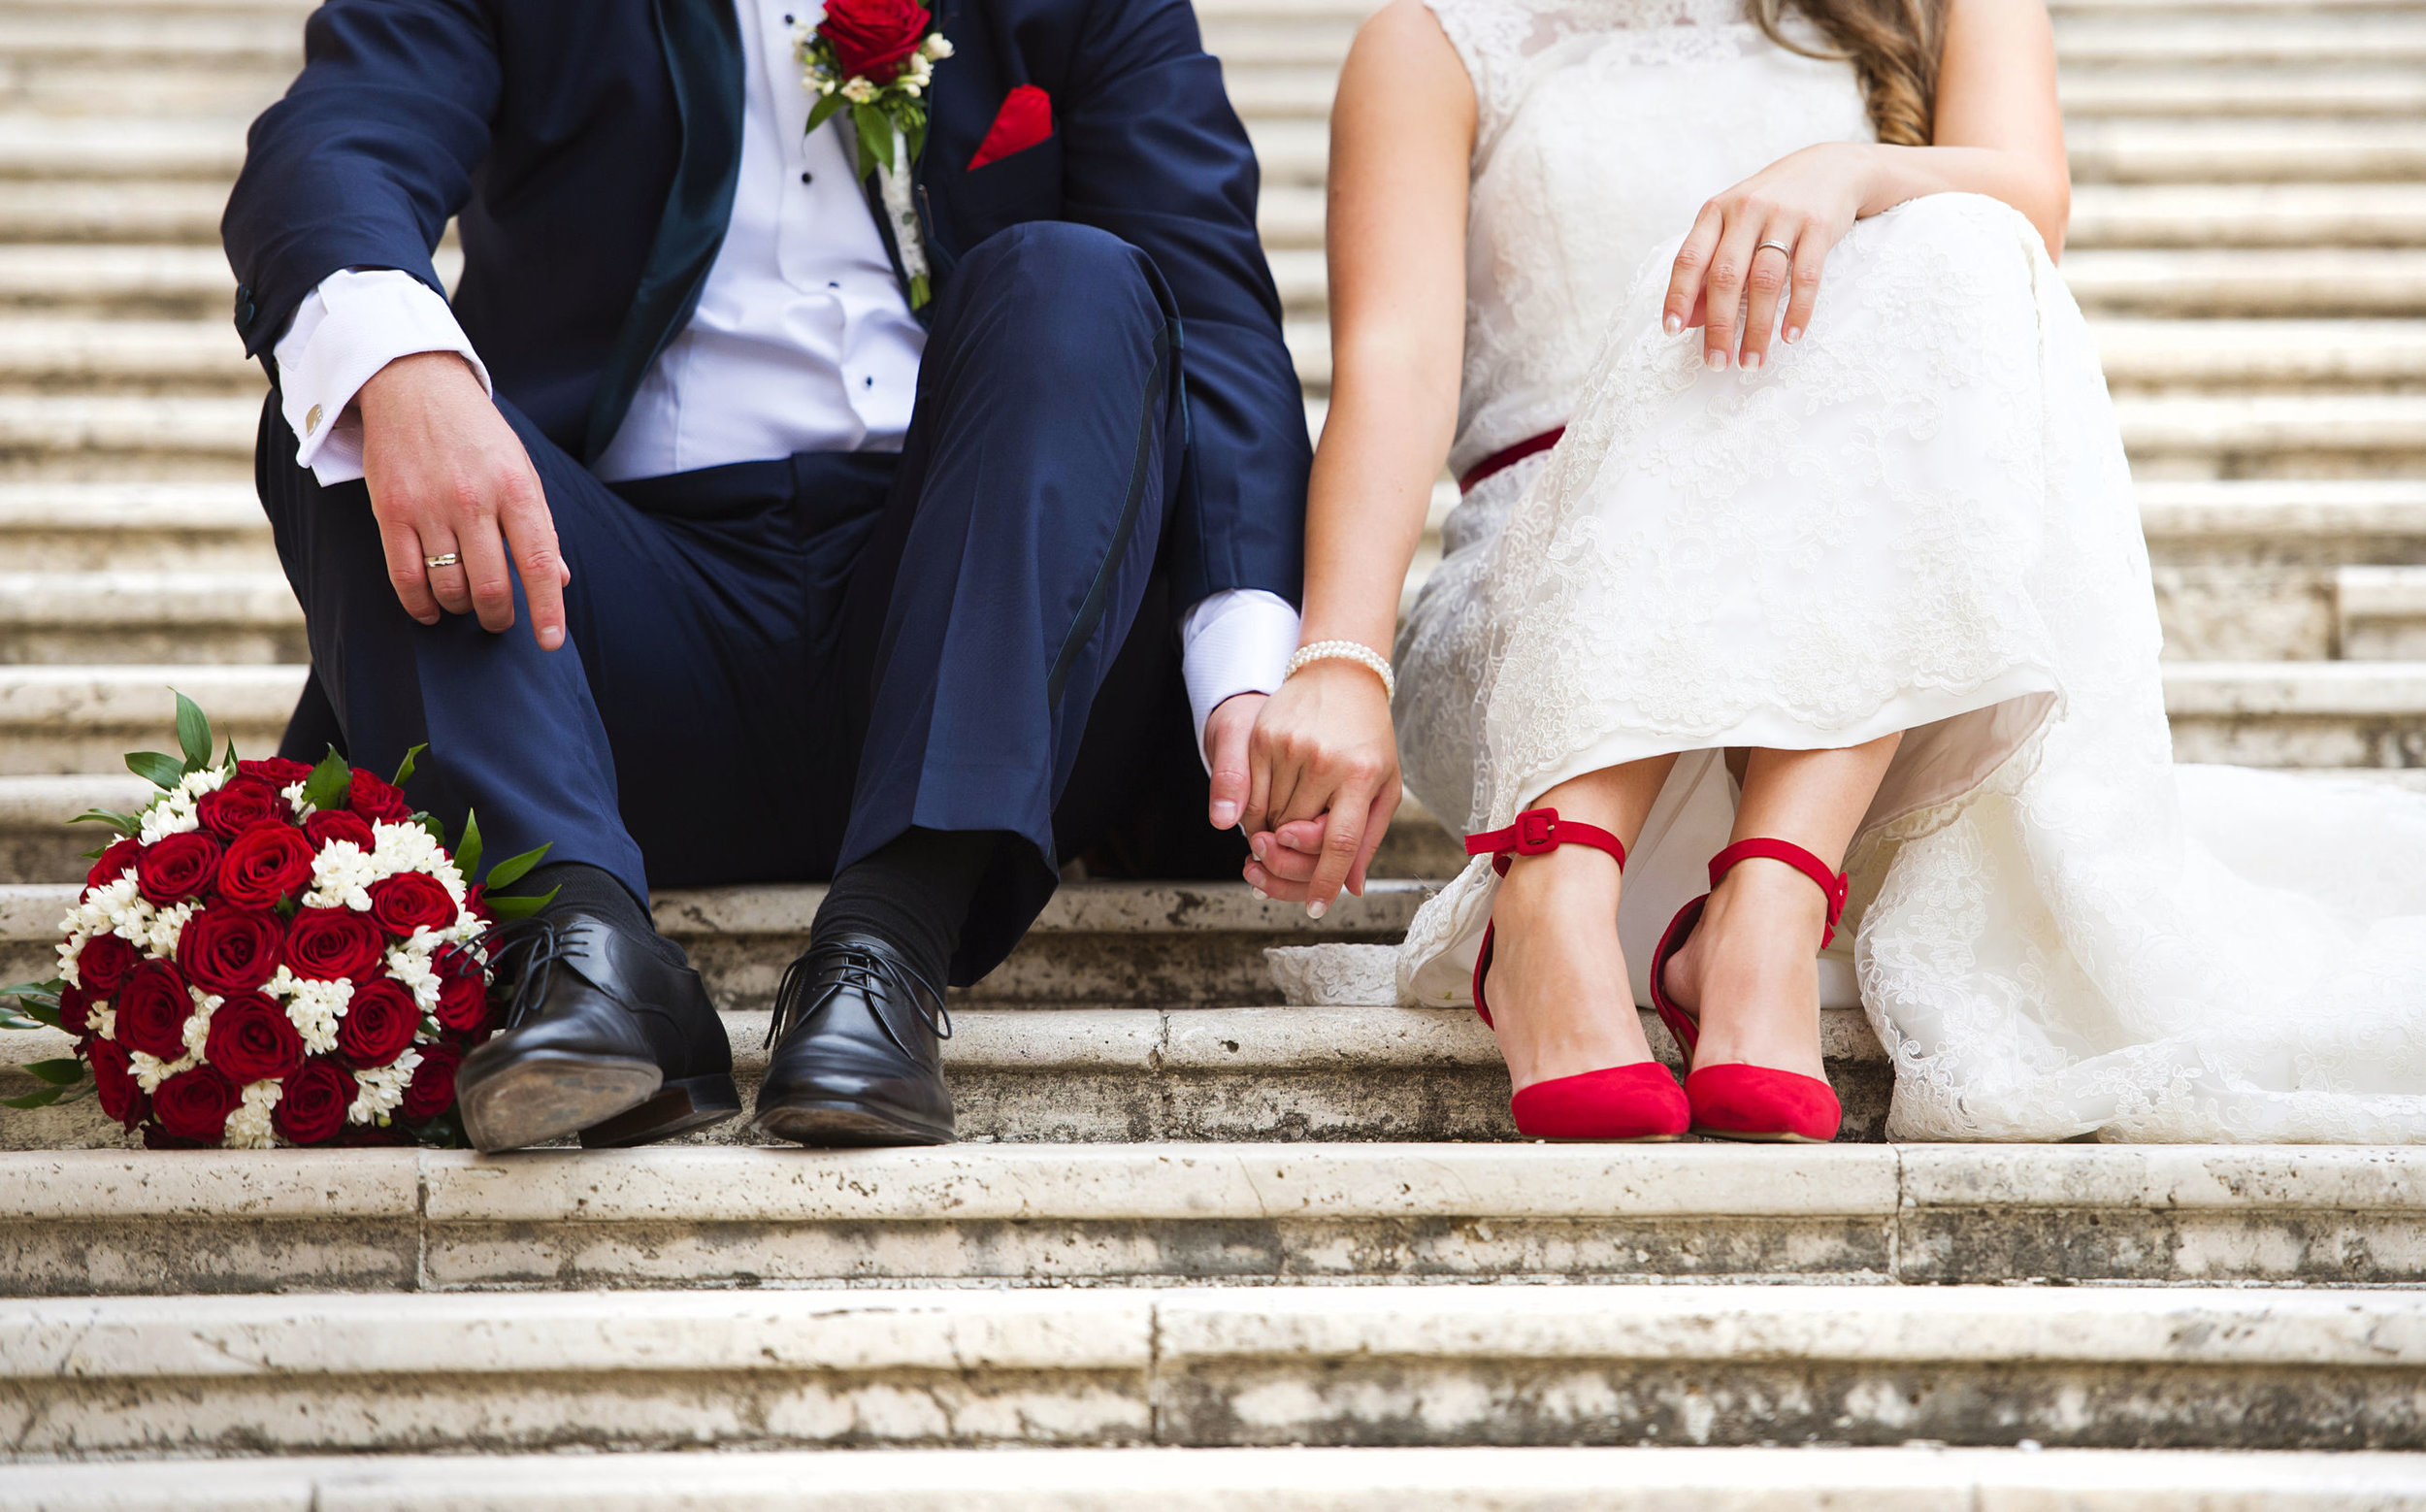 38163405 9-19-18 EP guide for newlyweds.jpg